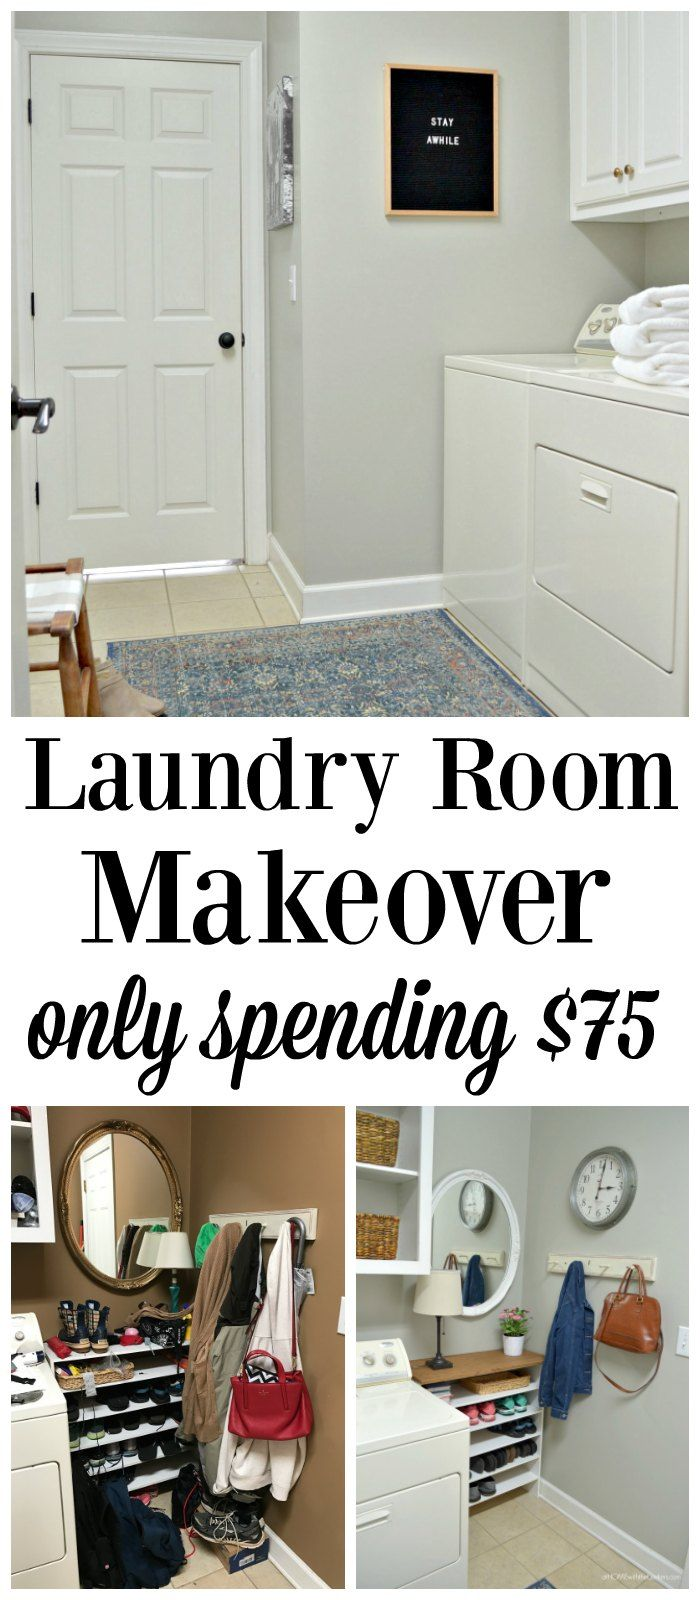 Apartment Decor Spotlight Budget Friendly Room Dividers: 1000+ Images About DIY Home Decor Ideas On Pinterest